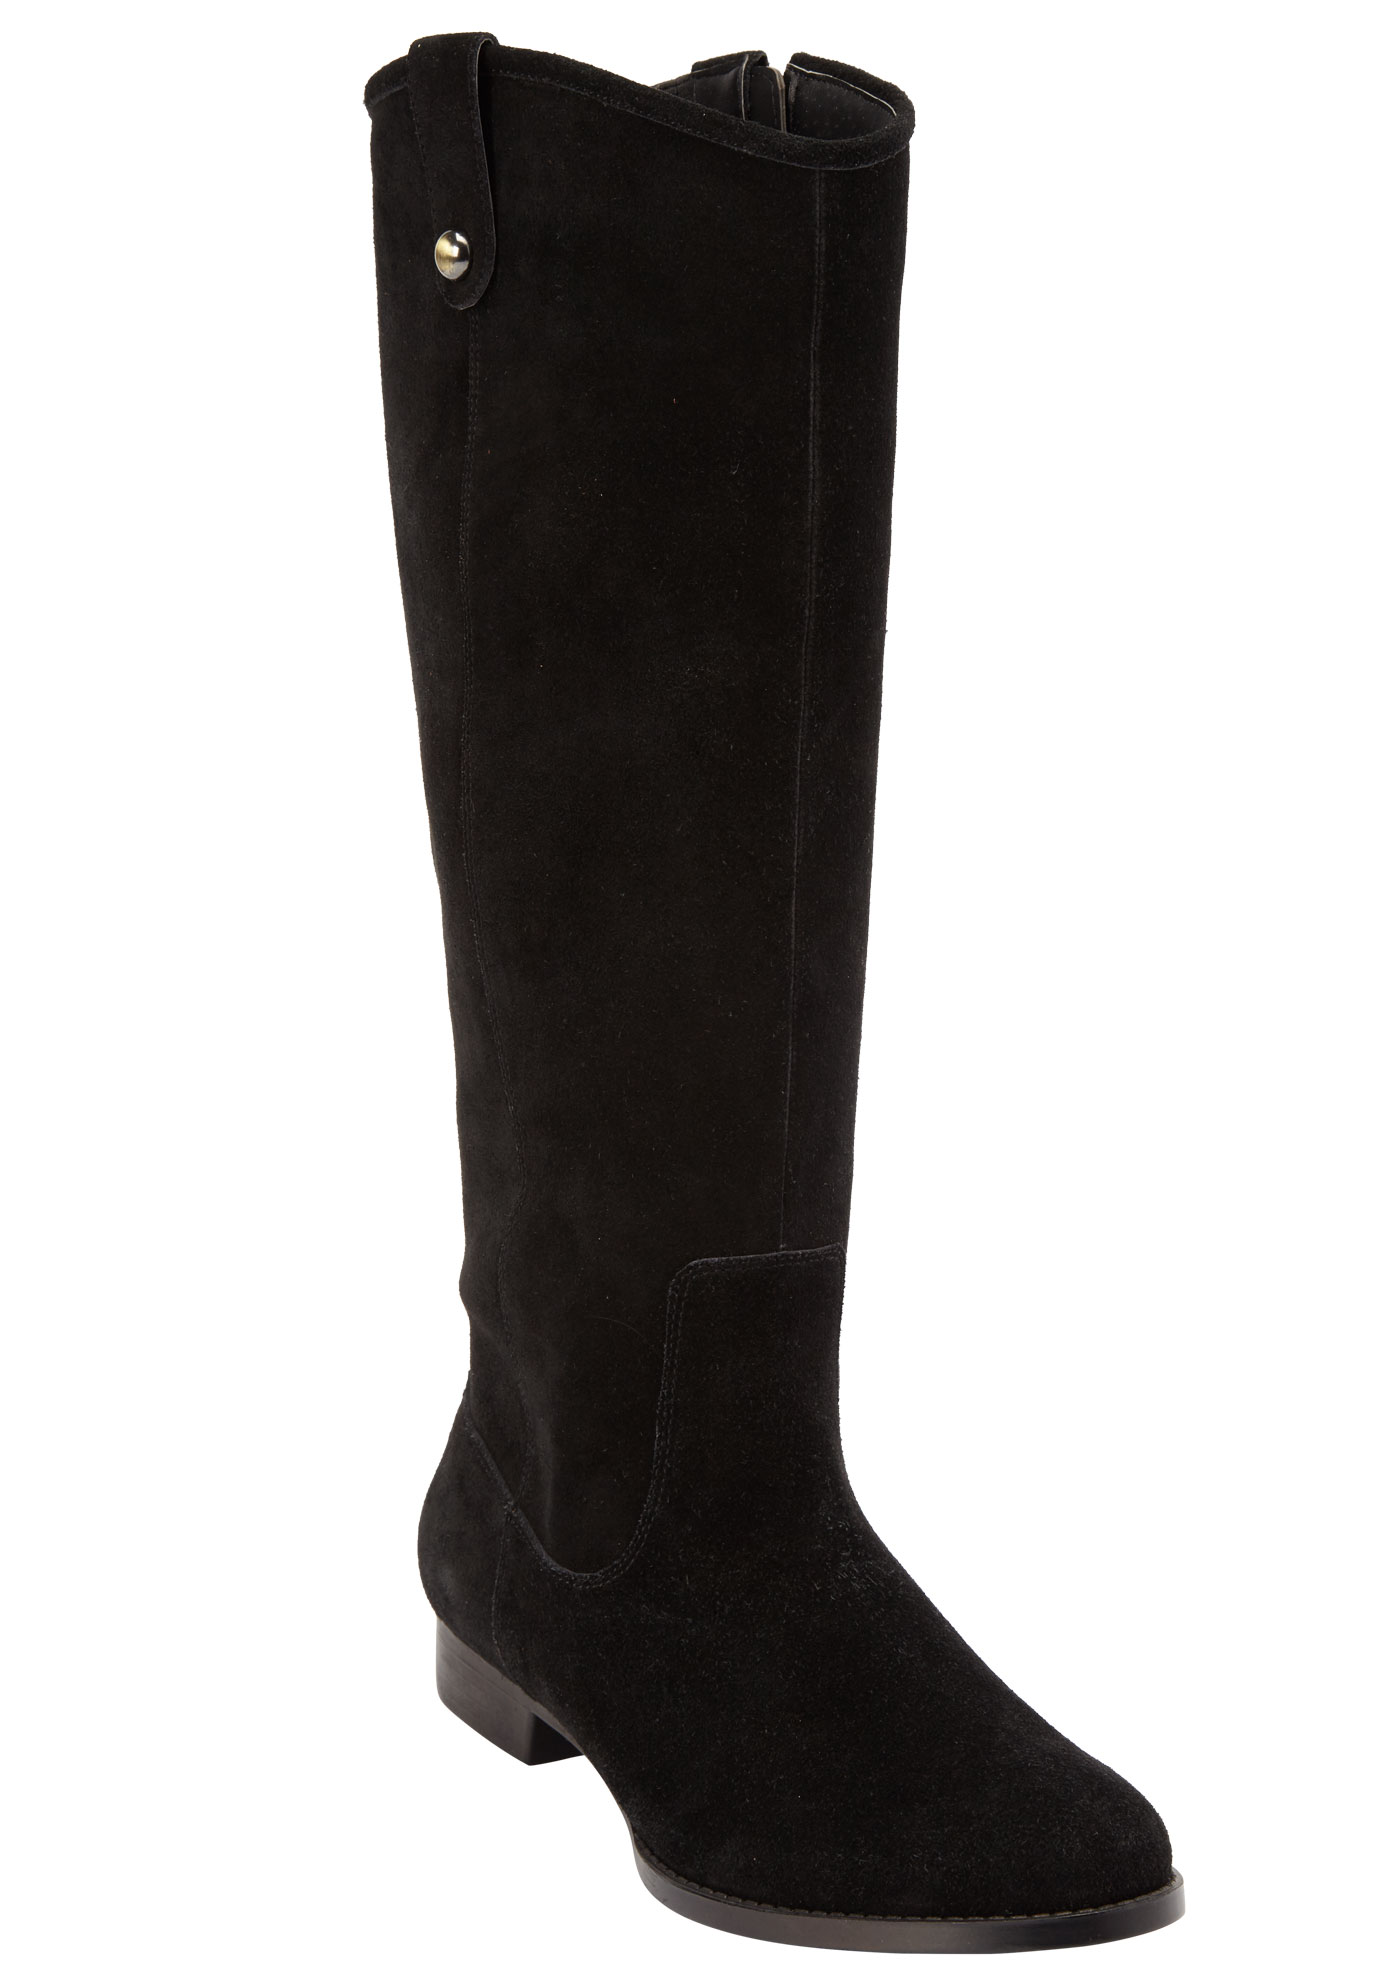 Paxton Tall Calf Boots by Comfortview, BLACK, hi-res